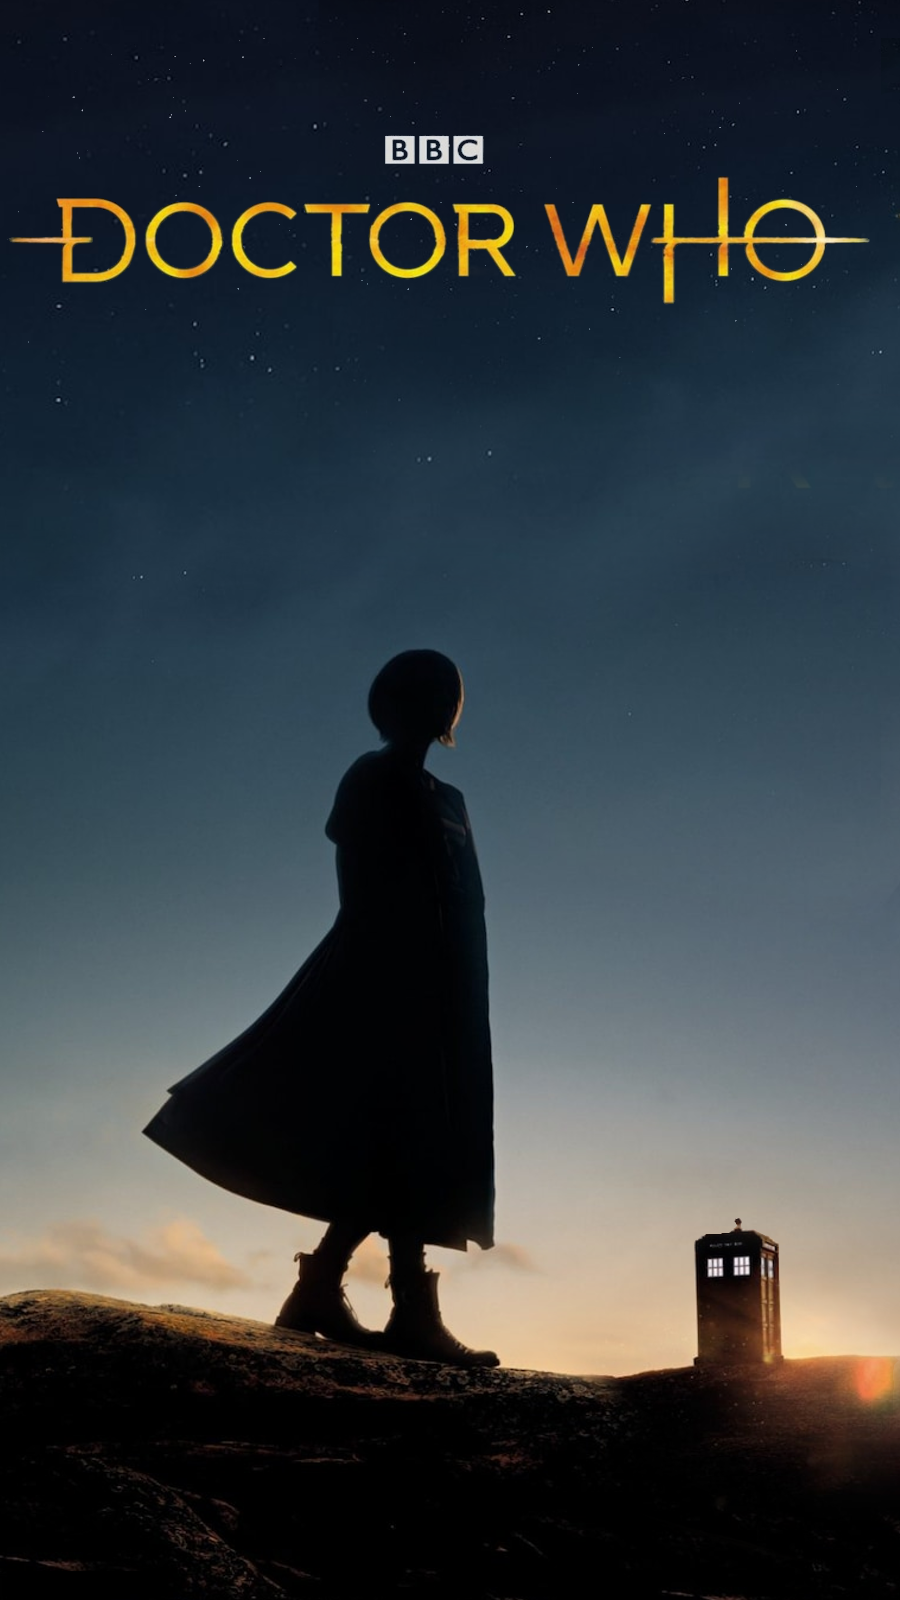 New image of the doctor but vertically for phone